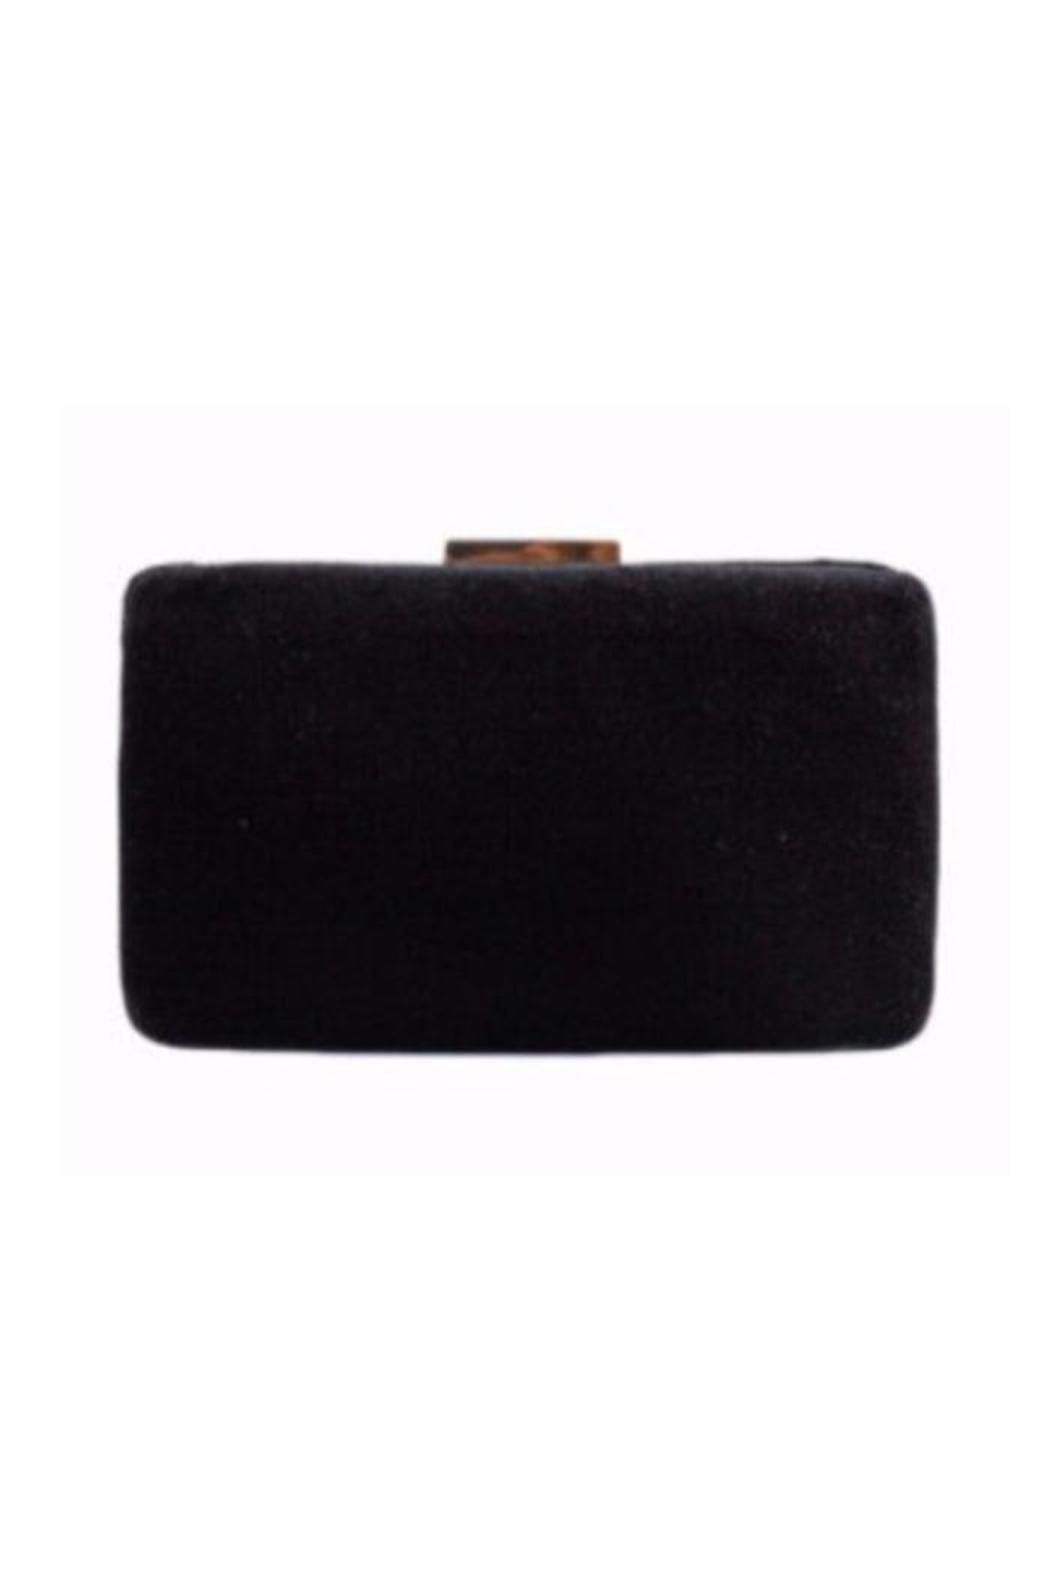 The Andrea velvet clutch features a gold toned rectangle clasp and an optional drop-in chain strap. Classy or casual the Andrea will add a great touch to any outfit. Easily fits standard size cellphone.  Measurements: 8W x 4.5H x 2D.  Comes in two colors: Black and Maroon Andrea Clutch-Black by Kayu. Bags - Clutches - Evening California